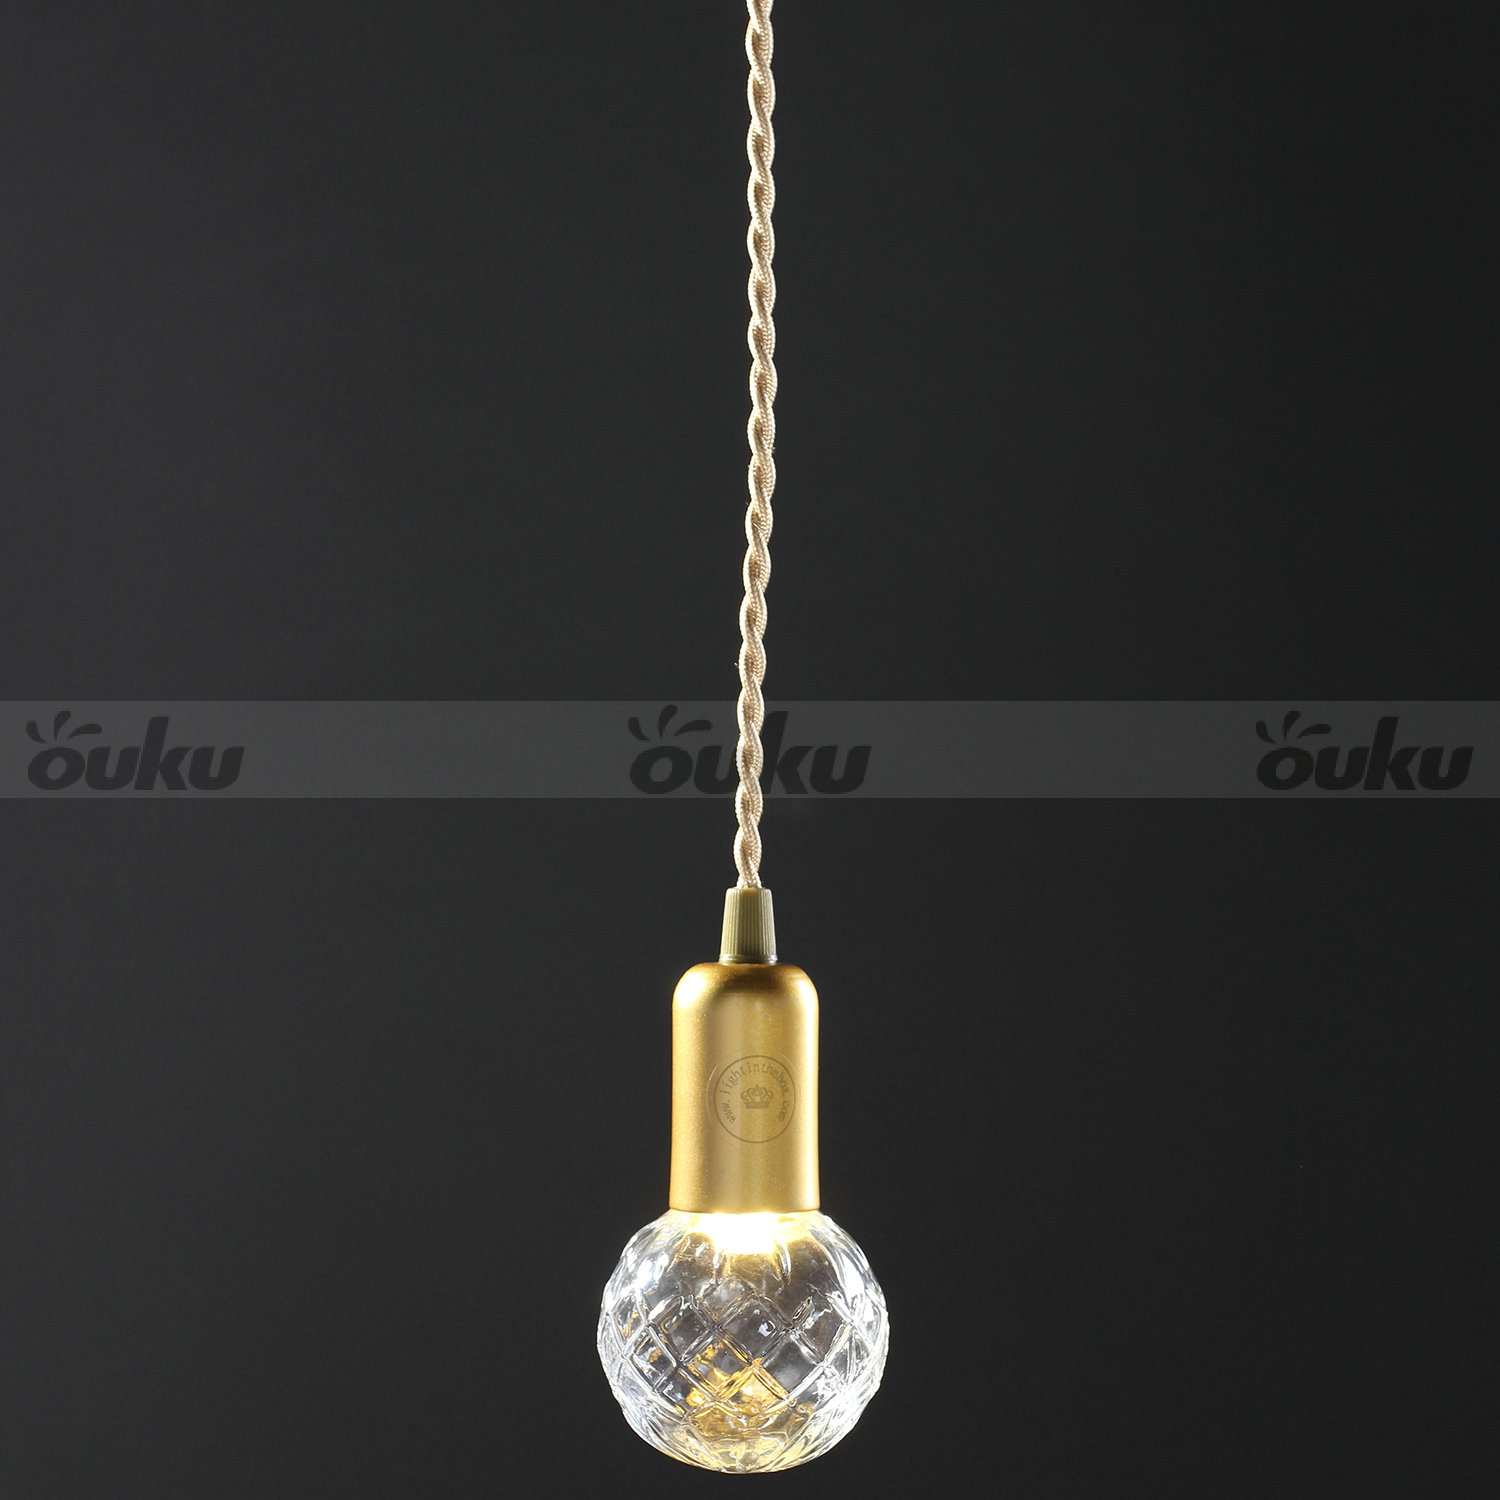 ca ship mini style chandelier ceiling light pendant